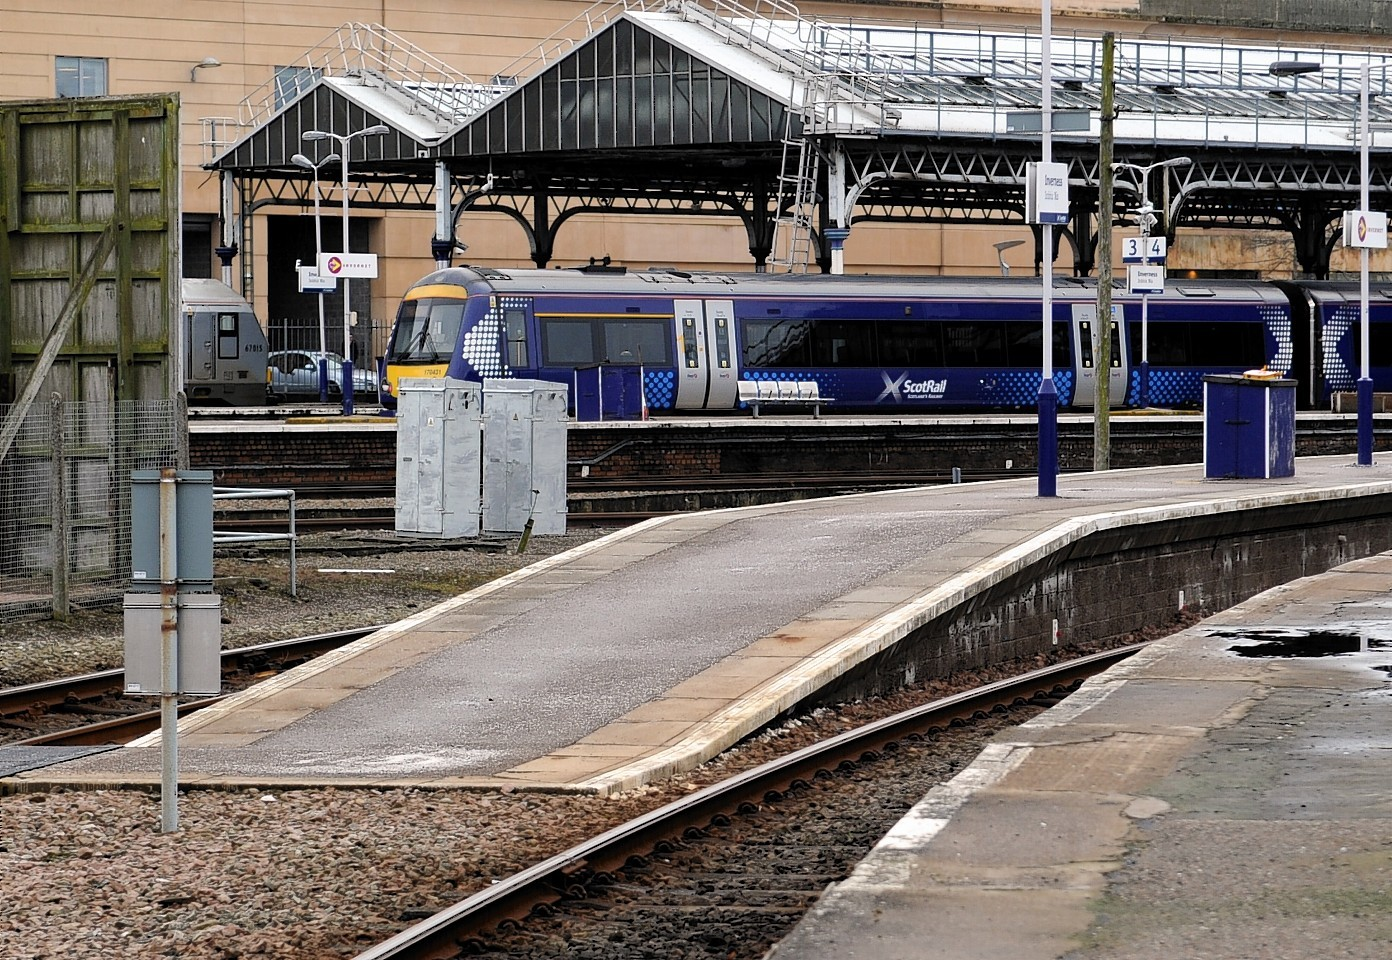 Inverness train station